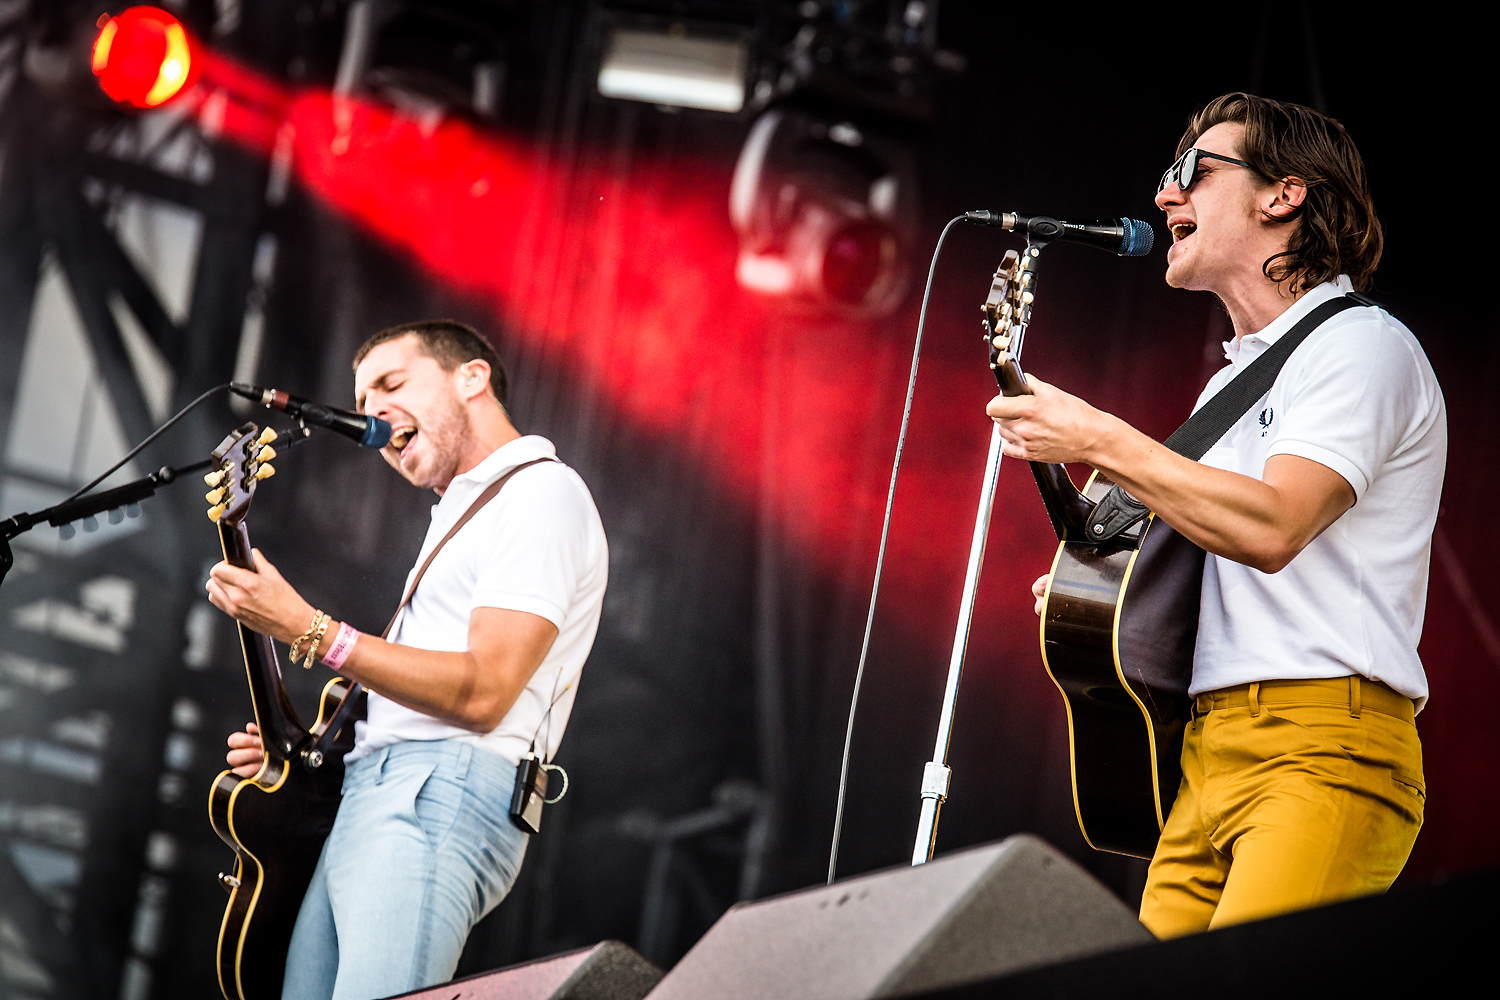 The Last Shadow Puppets @ Rock Werchter 2016 (Jan Van den Bulck)